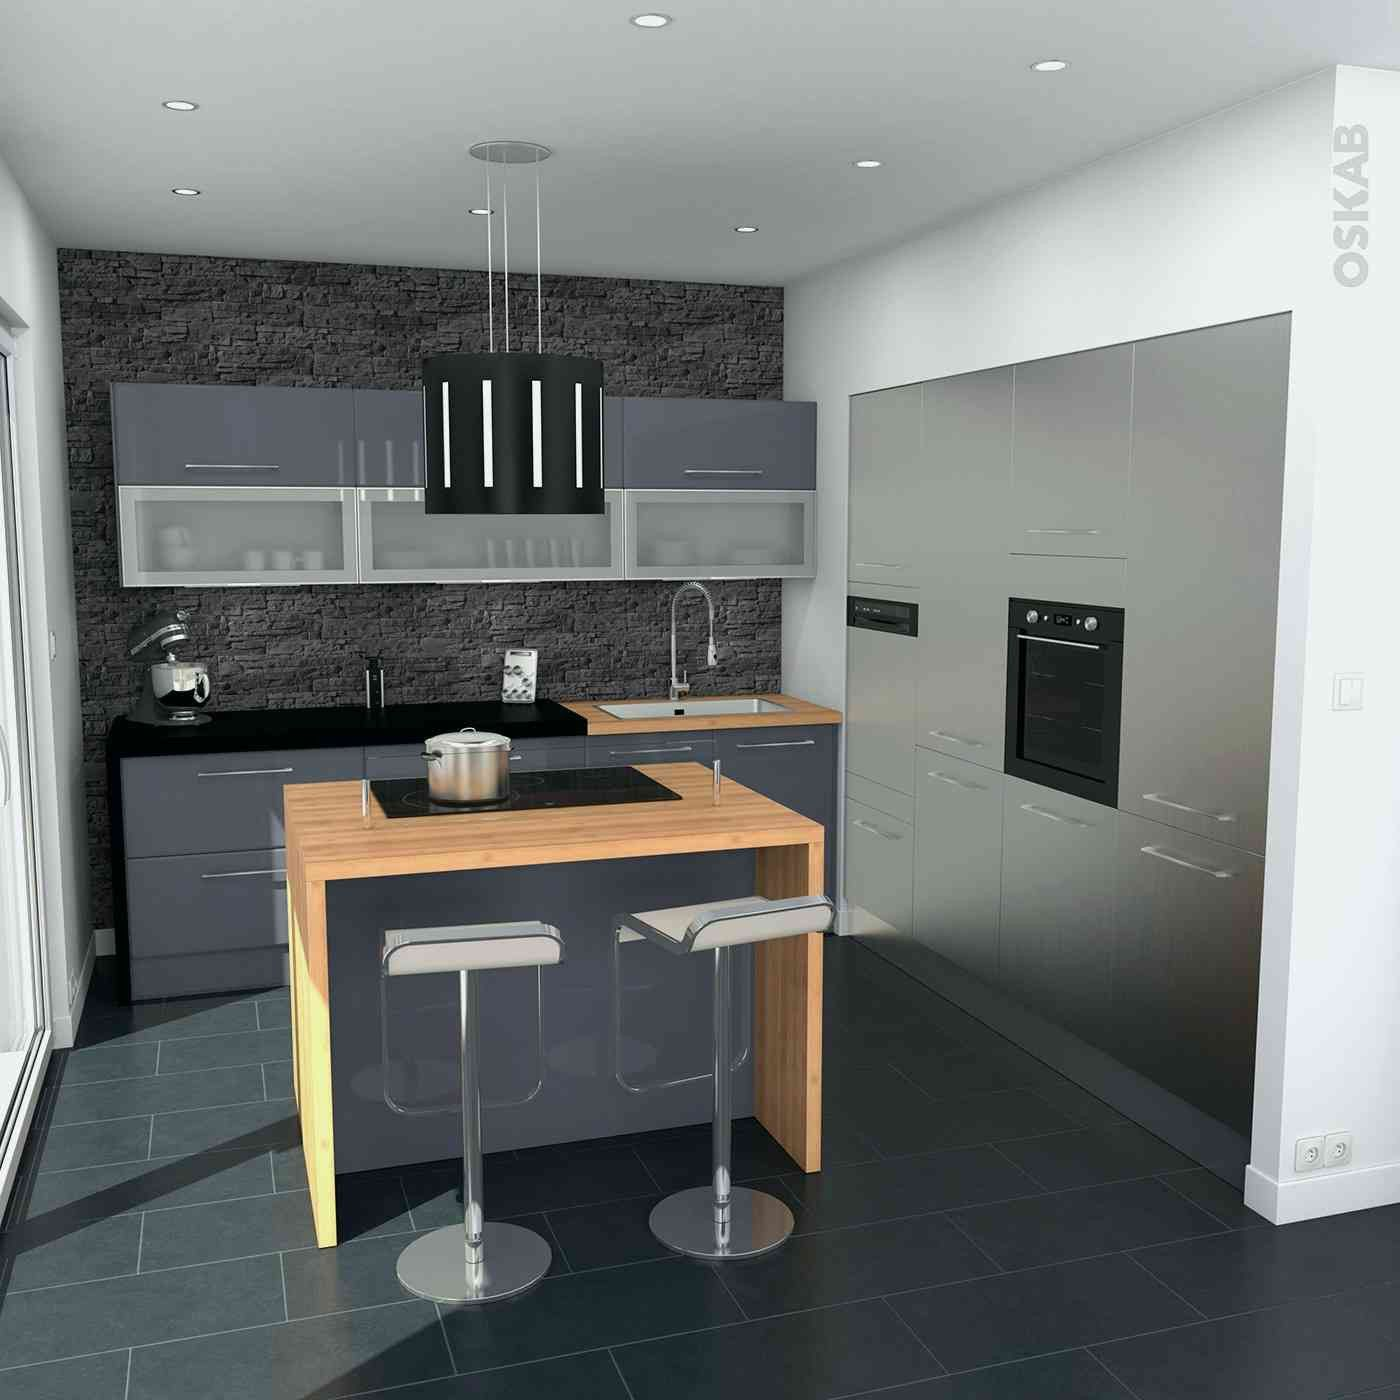 Fresh Cuisine En U Avec Ilot Idees De Maison Kitchen Design